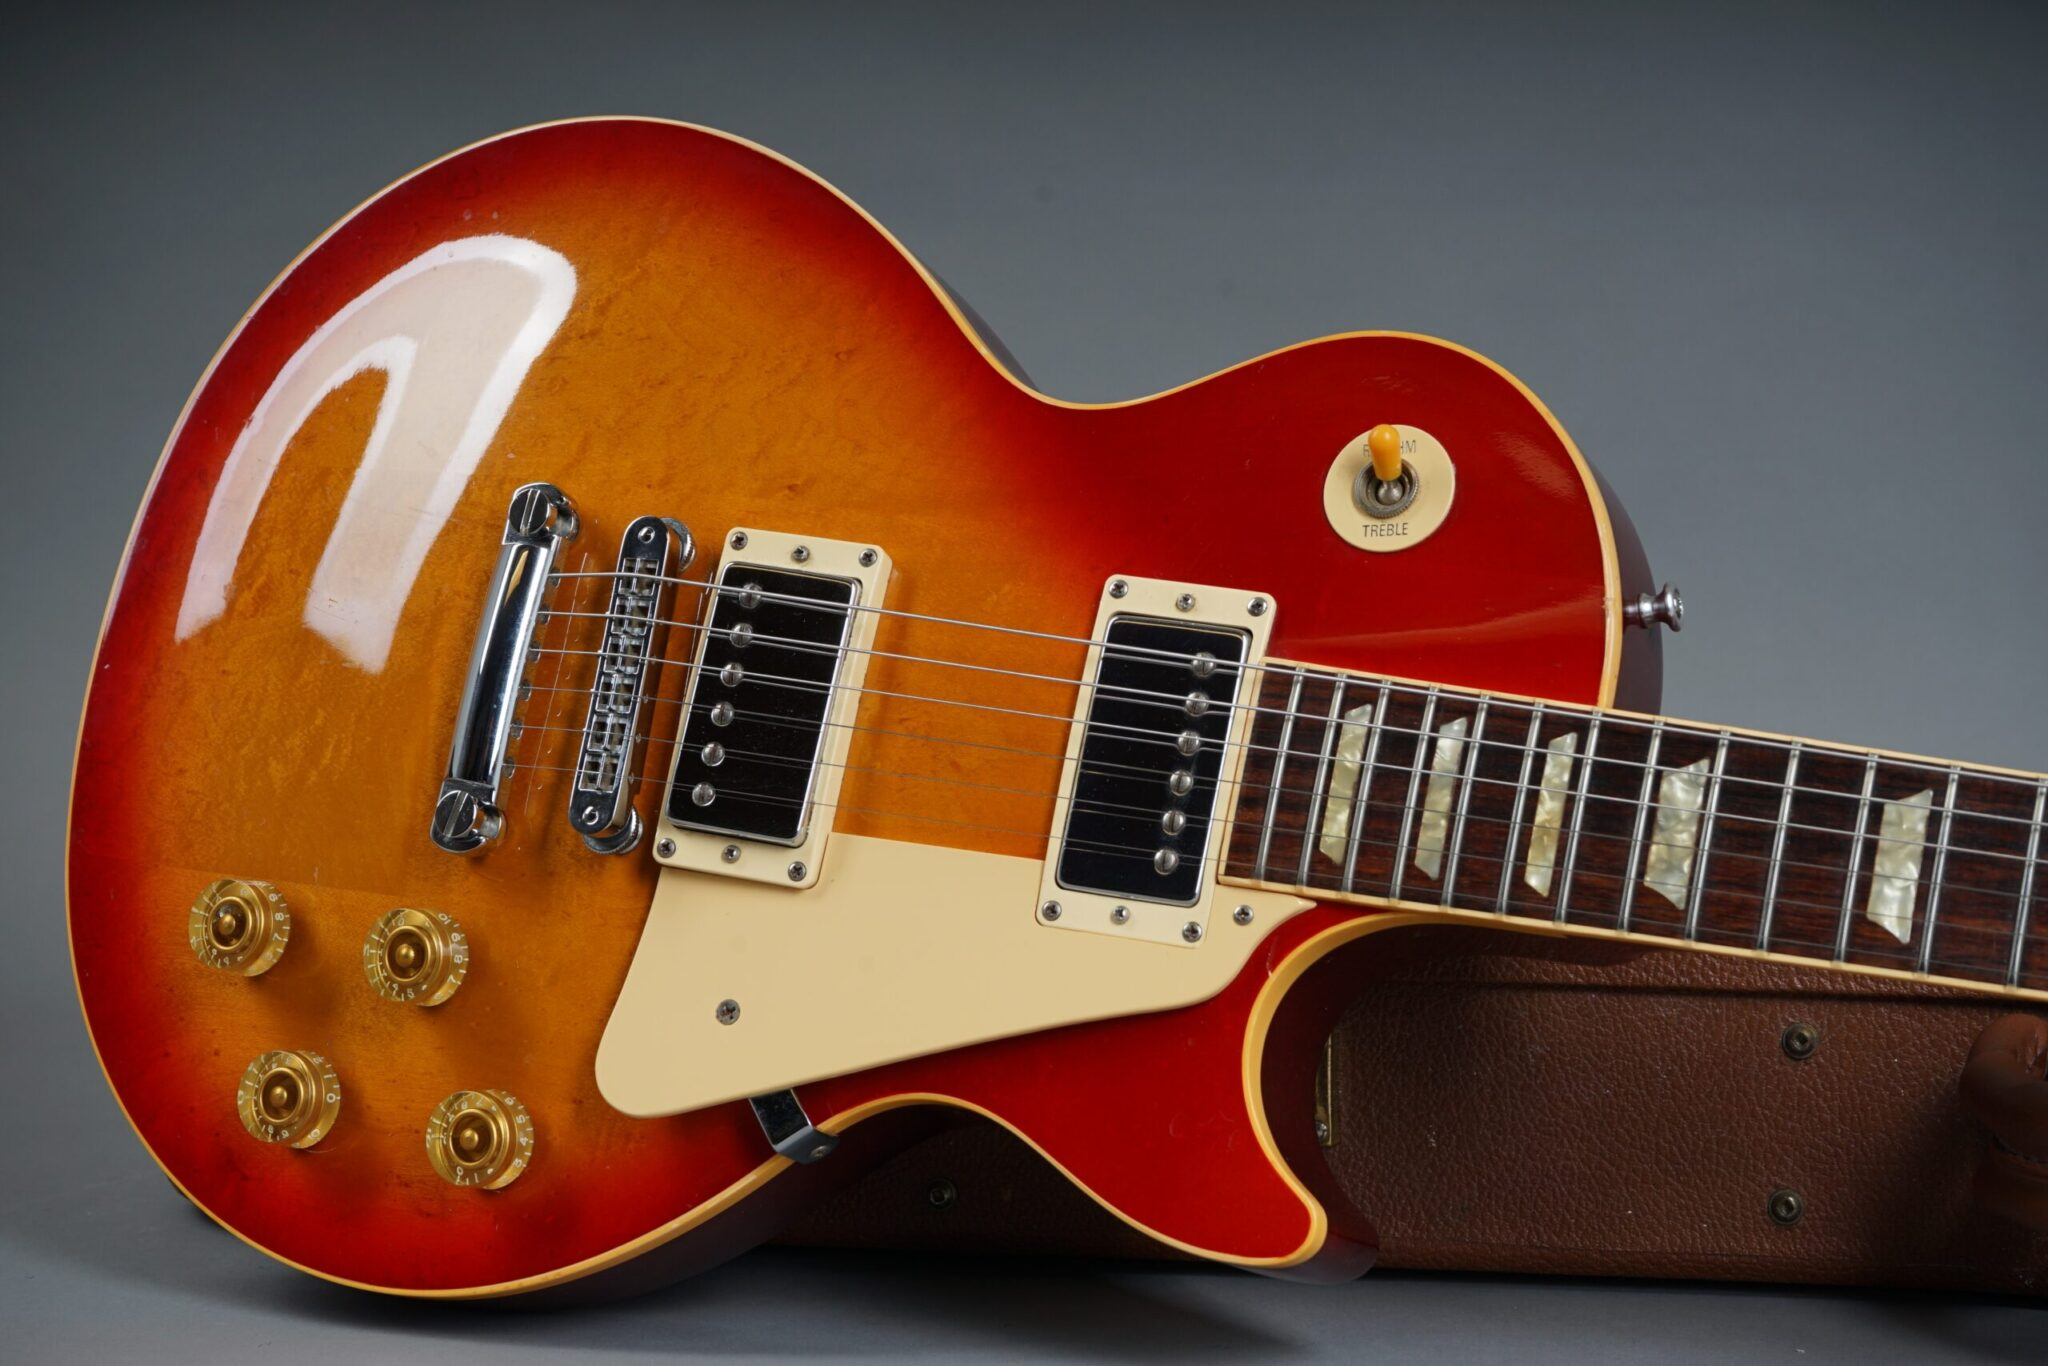 https://guitarpoint.de/app/uploads/products/1993-les-paul-standard-cherry-sunburst/1993-Gibson-Les-Paul-Standard-Cherry-Sunburst-90683378_19-scaled-2048x1366.jpg